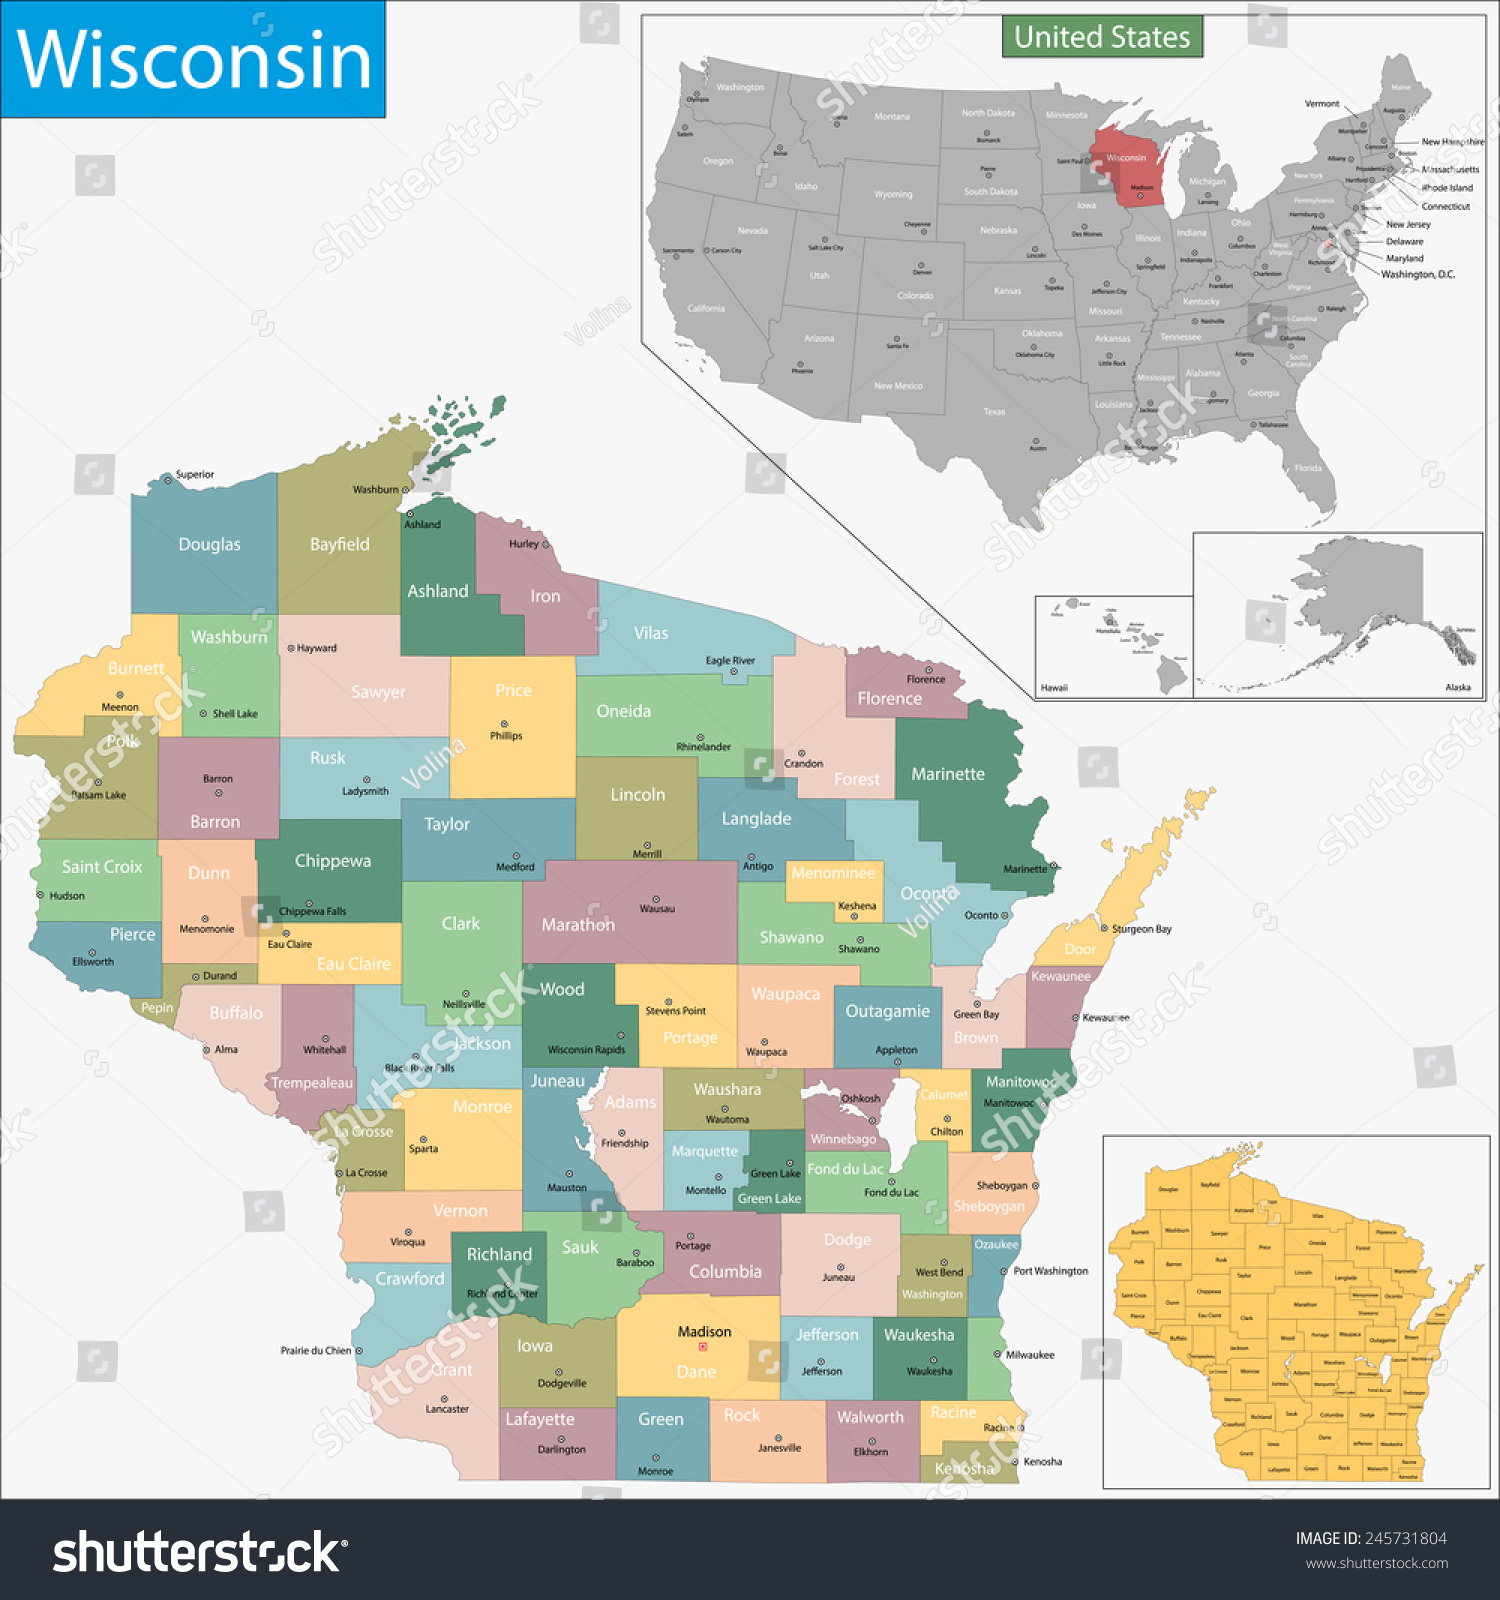 Map Wisconsin State Designed Illustration Counties Stock - Map wisconsin